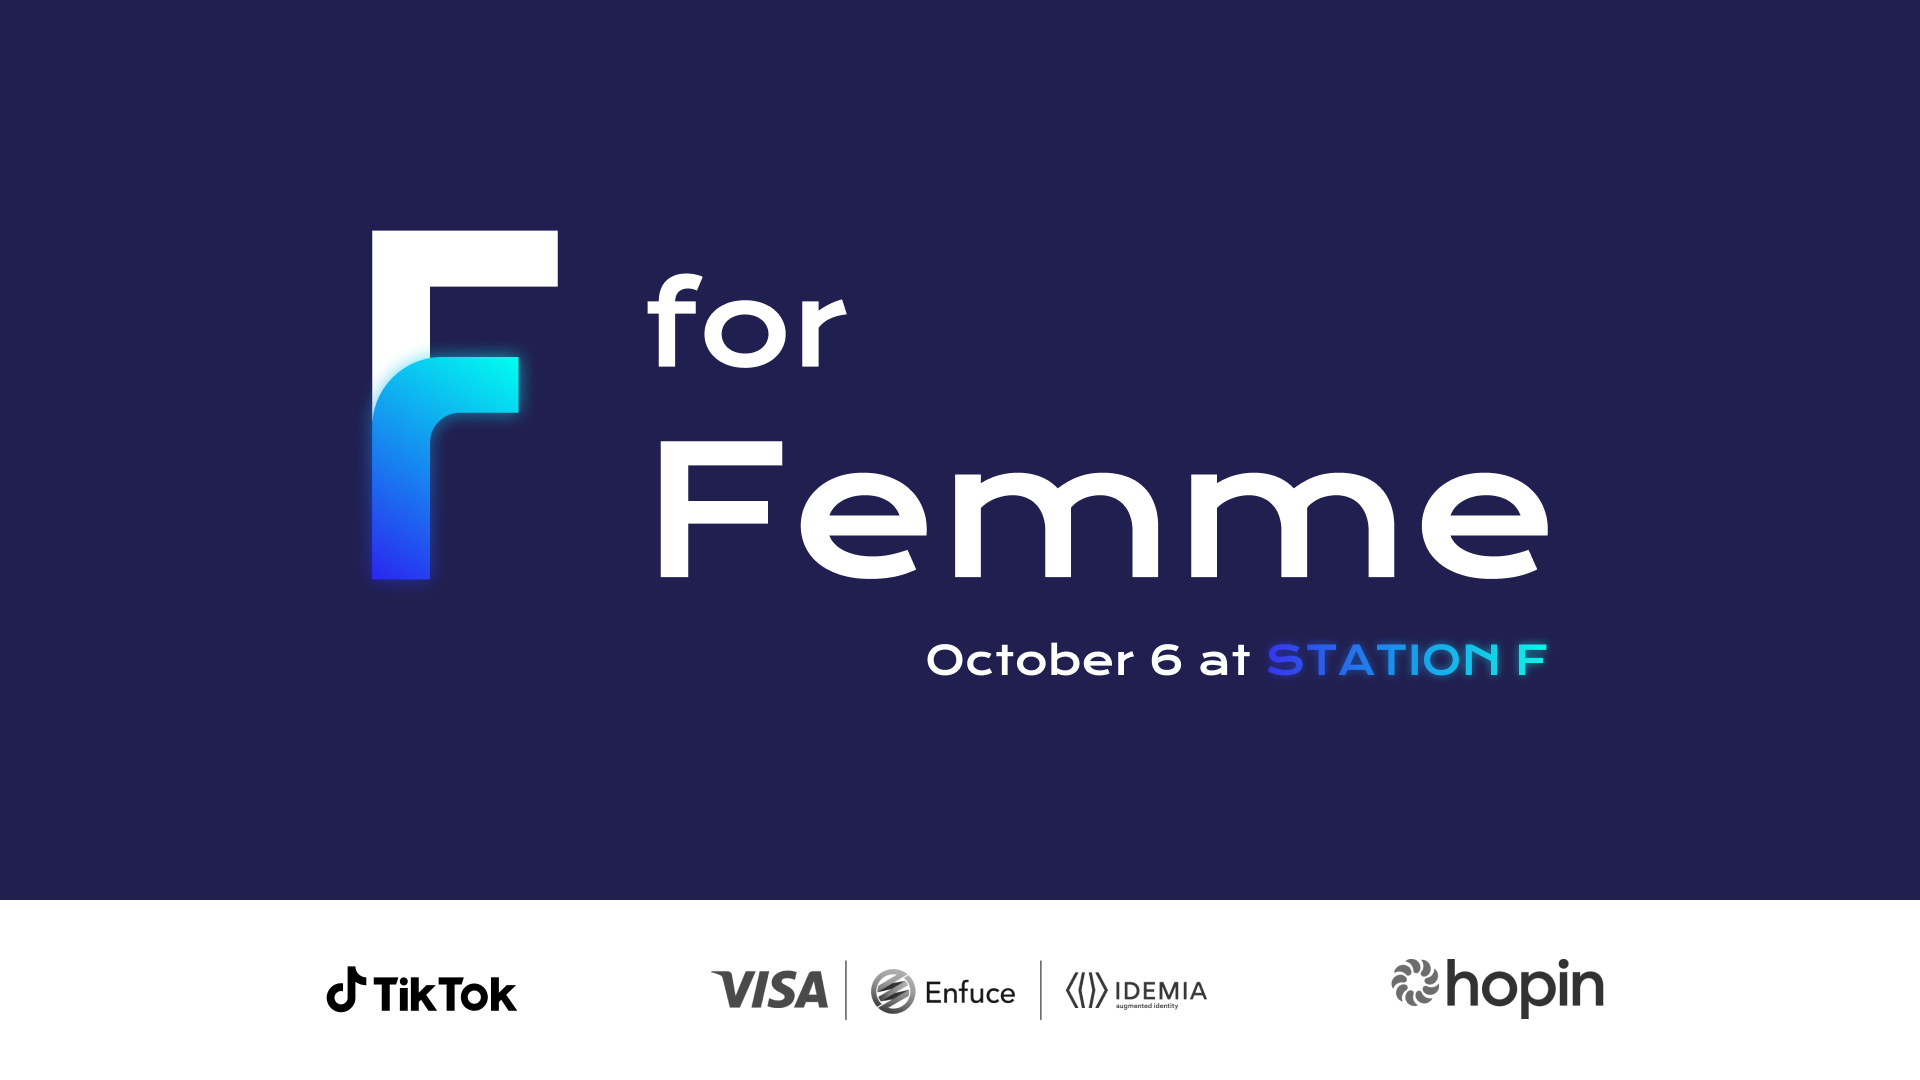 Thumbnail for event F for Femme